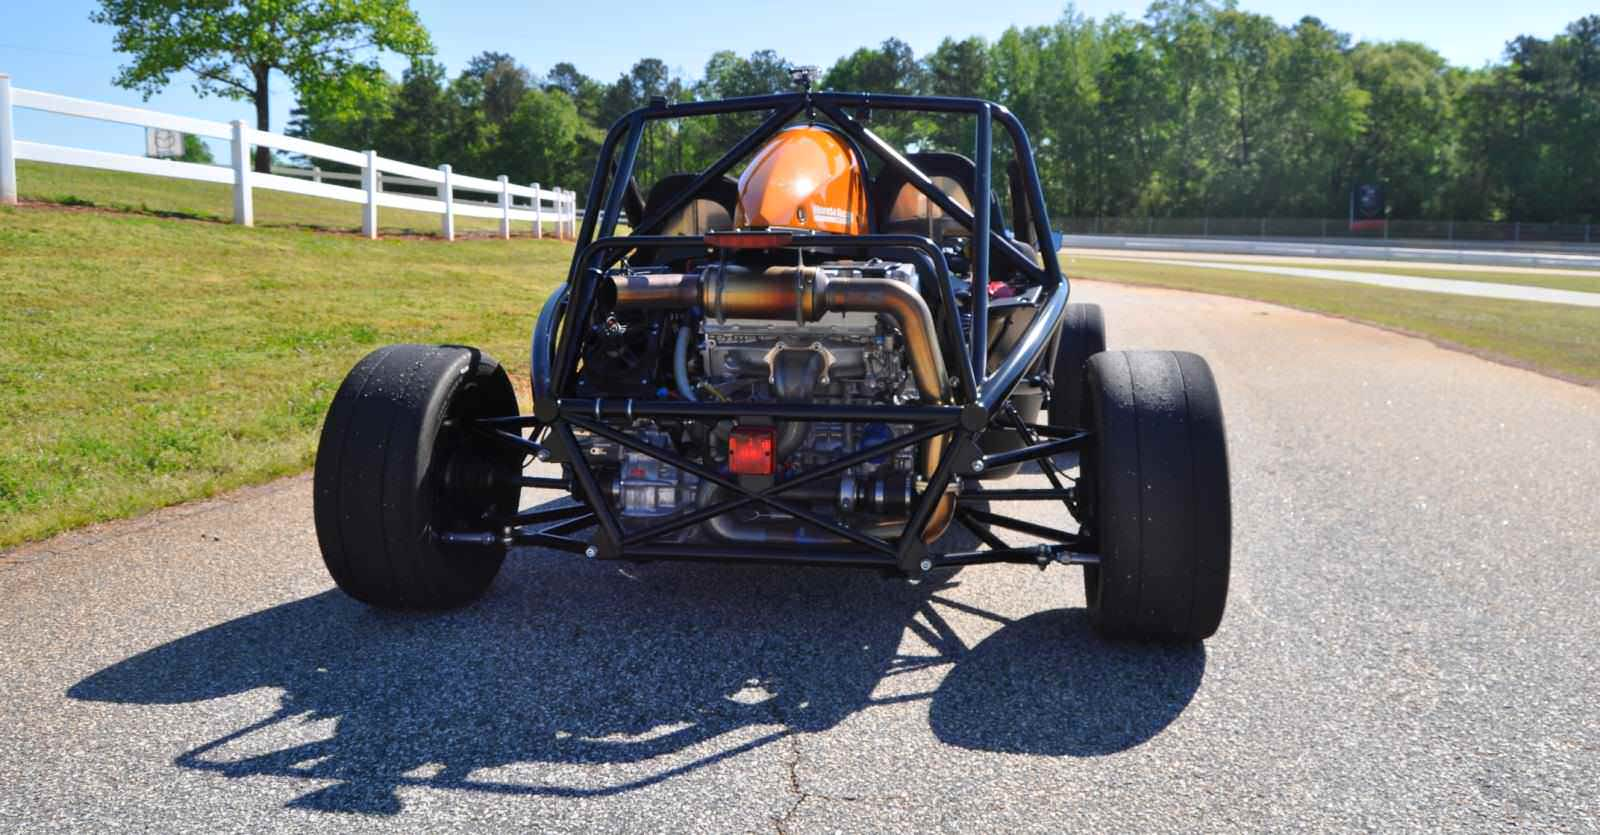 Ariel Atom Duo on Slicks at the Road Atlanta Skidpad for ATL Driving Experience 18